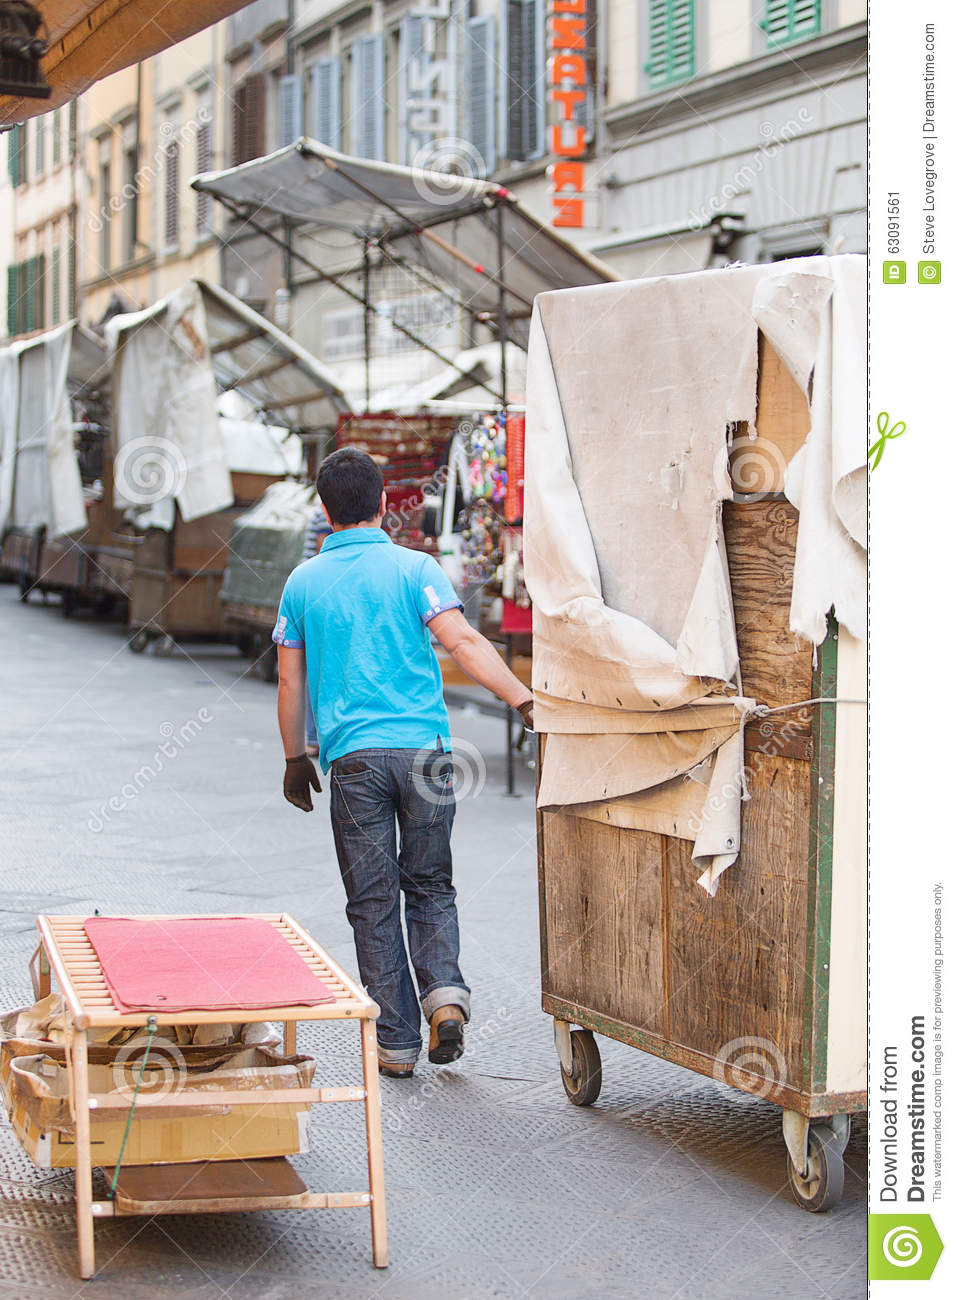 Download San Lorenzo Leather Market Florence Photo éditorial - Image du florence, fonctionnement: 63091561